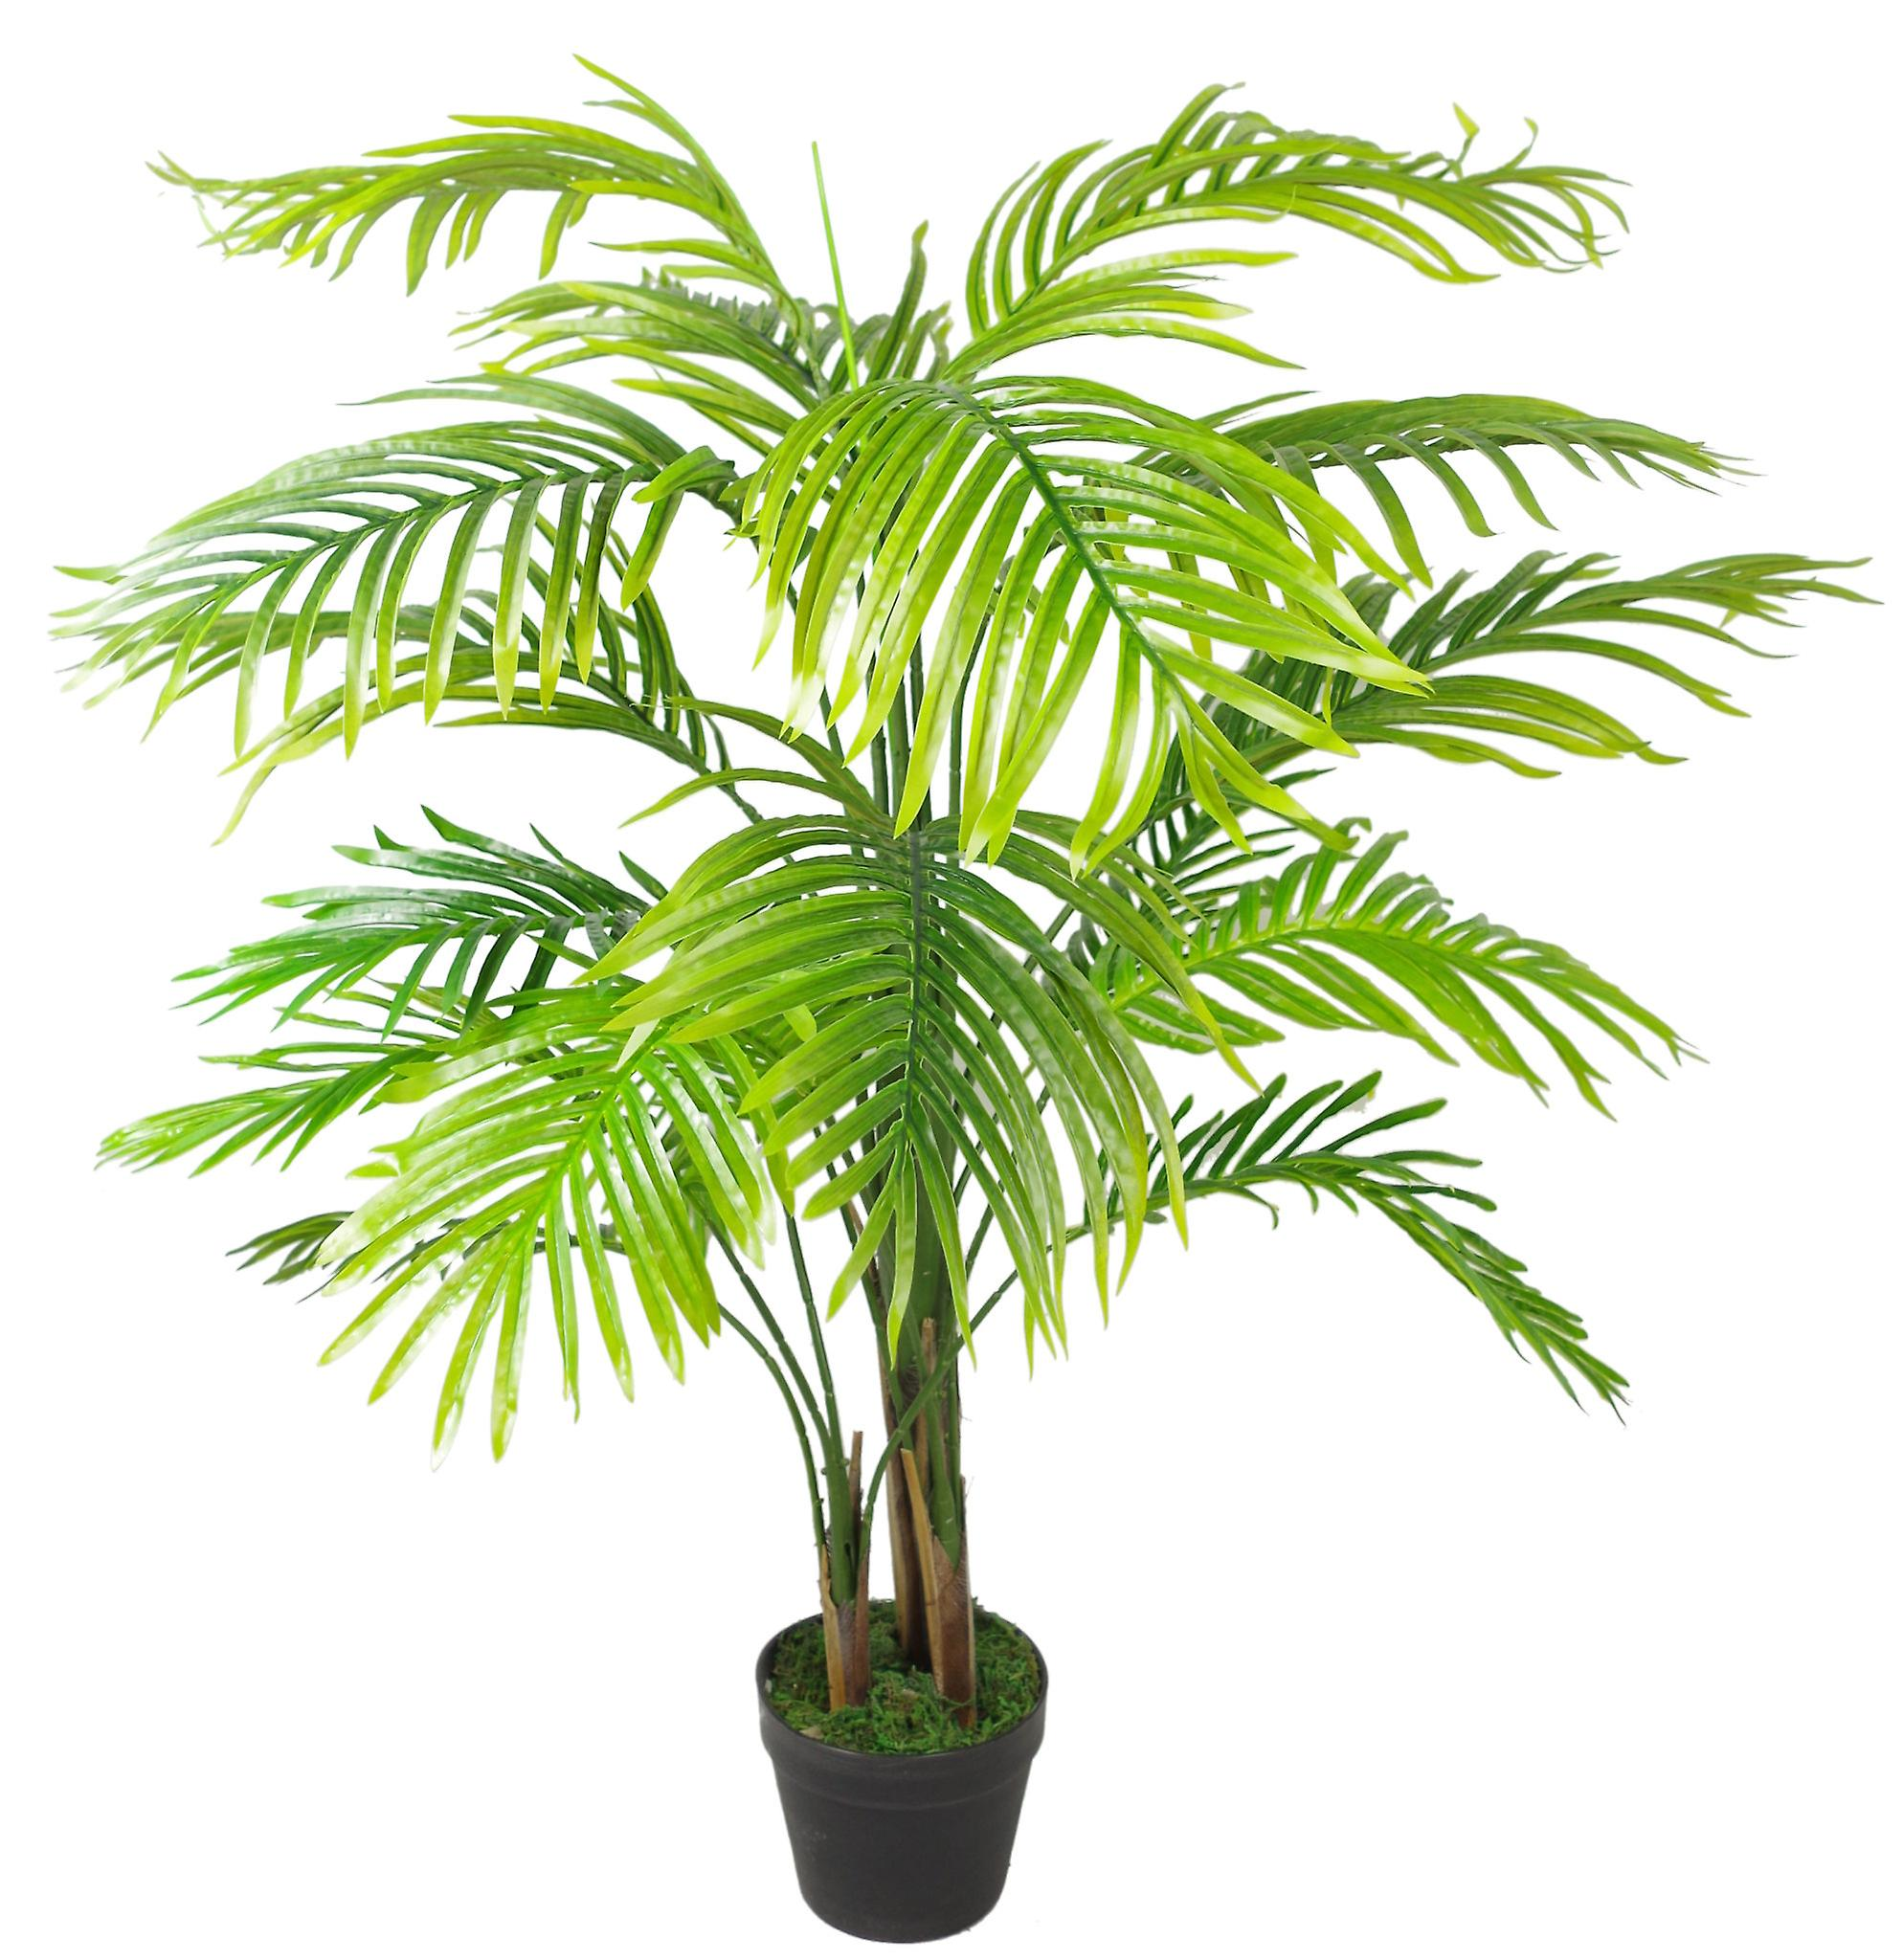 130cm Artificial Areca Palm Tree - Extra Large